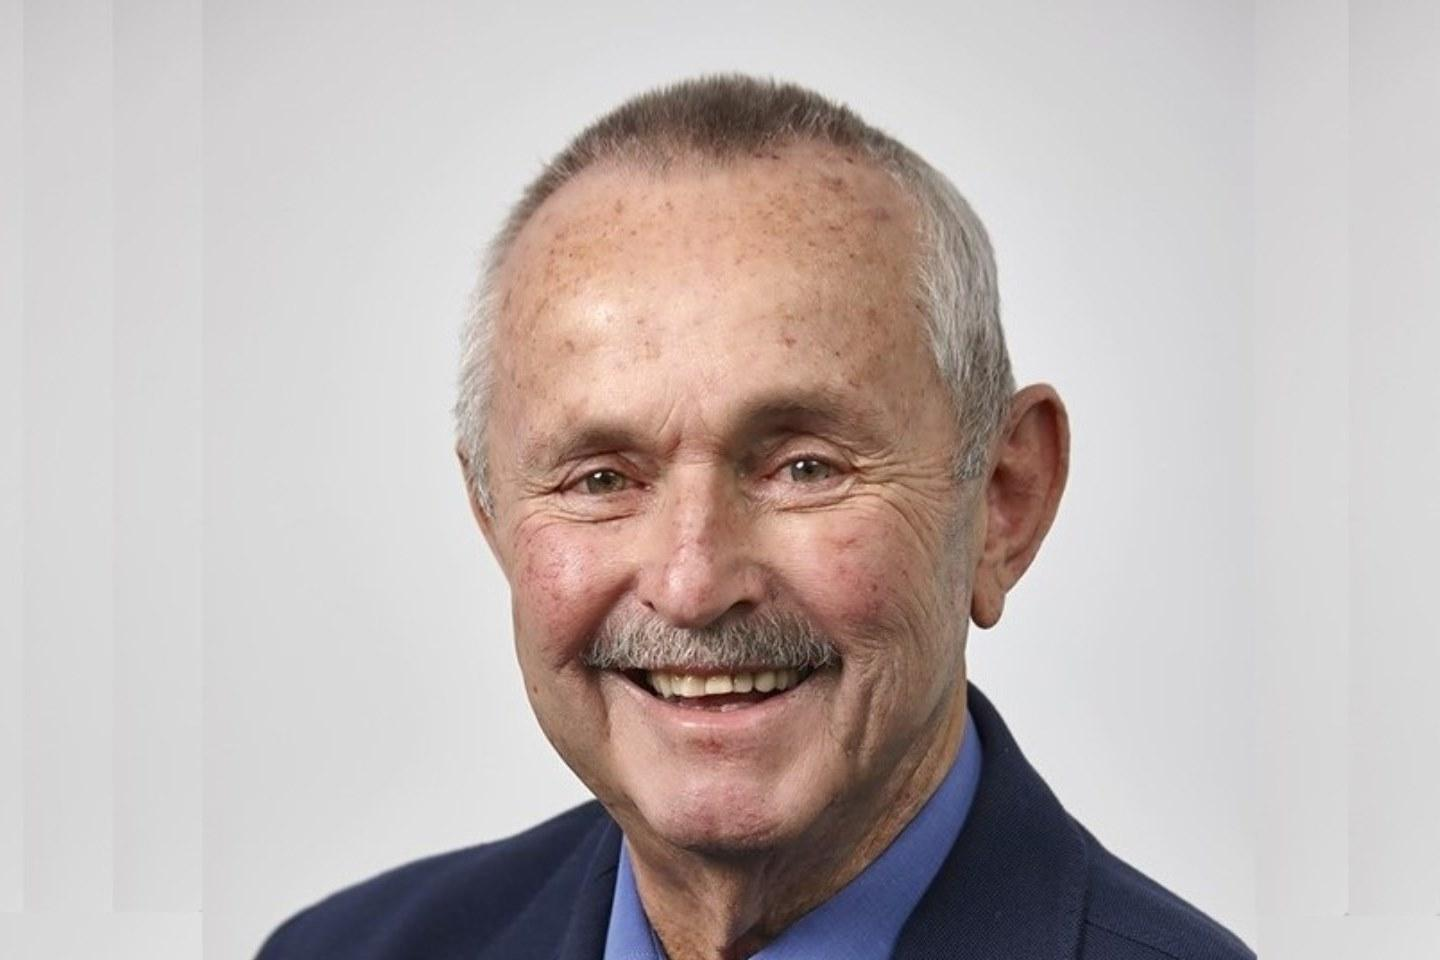 Mining industry farewells Barry Patterson